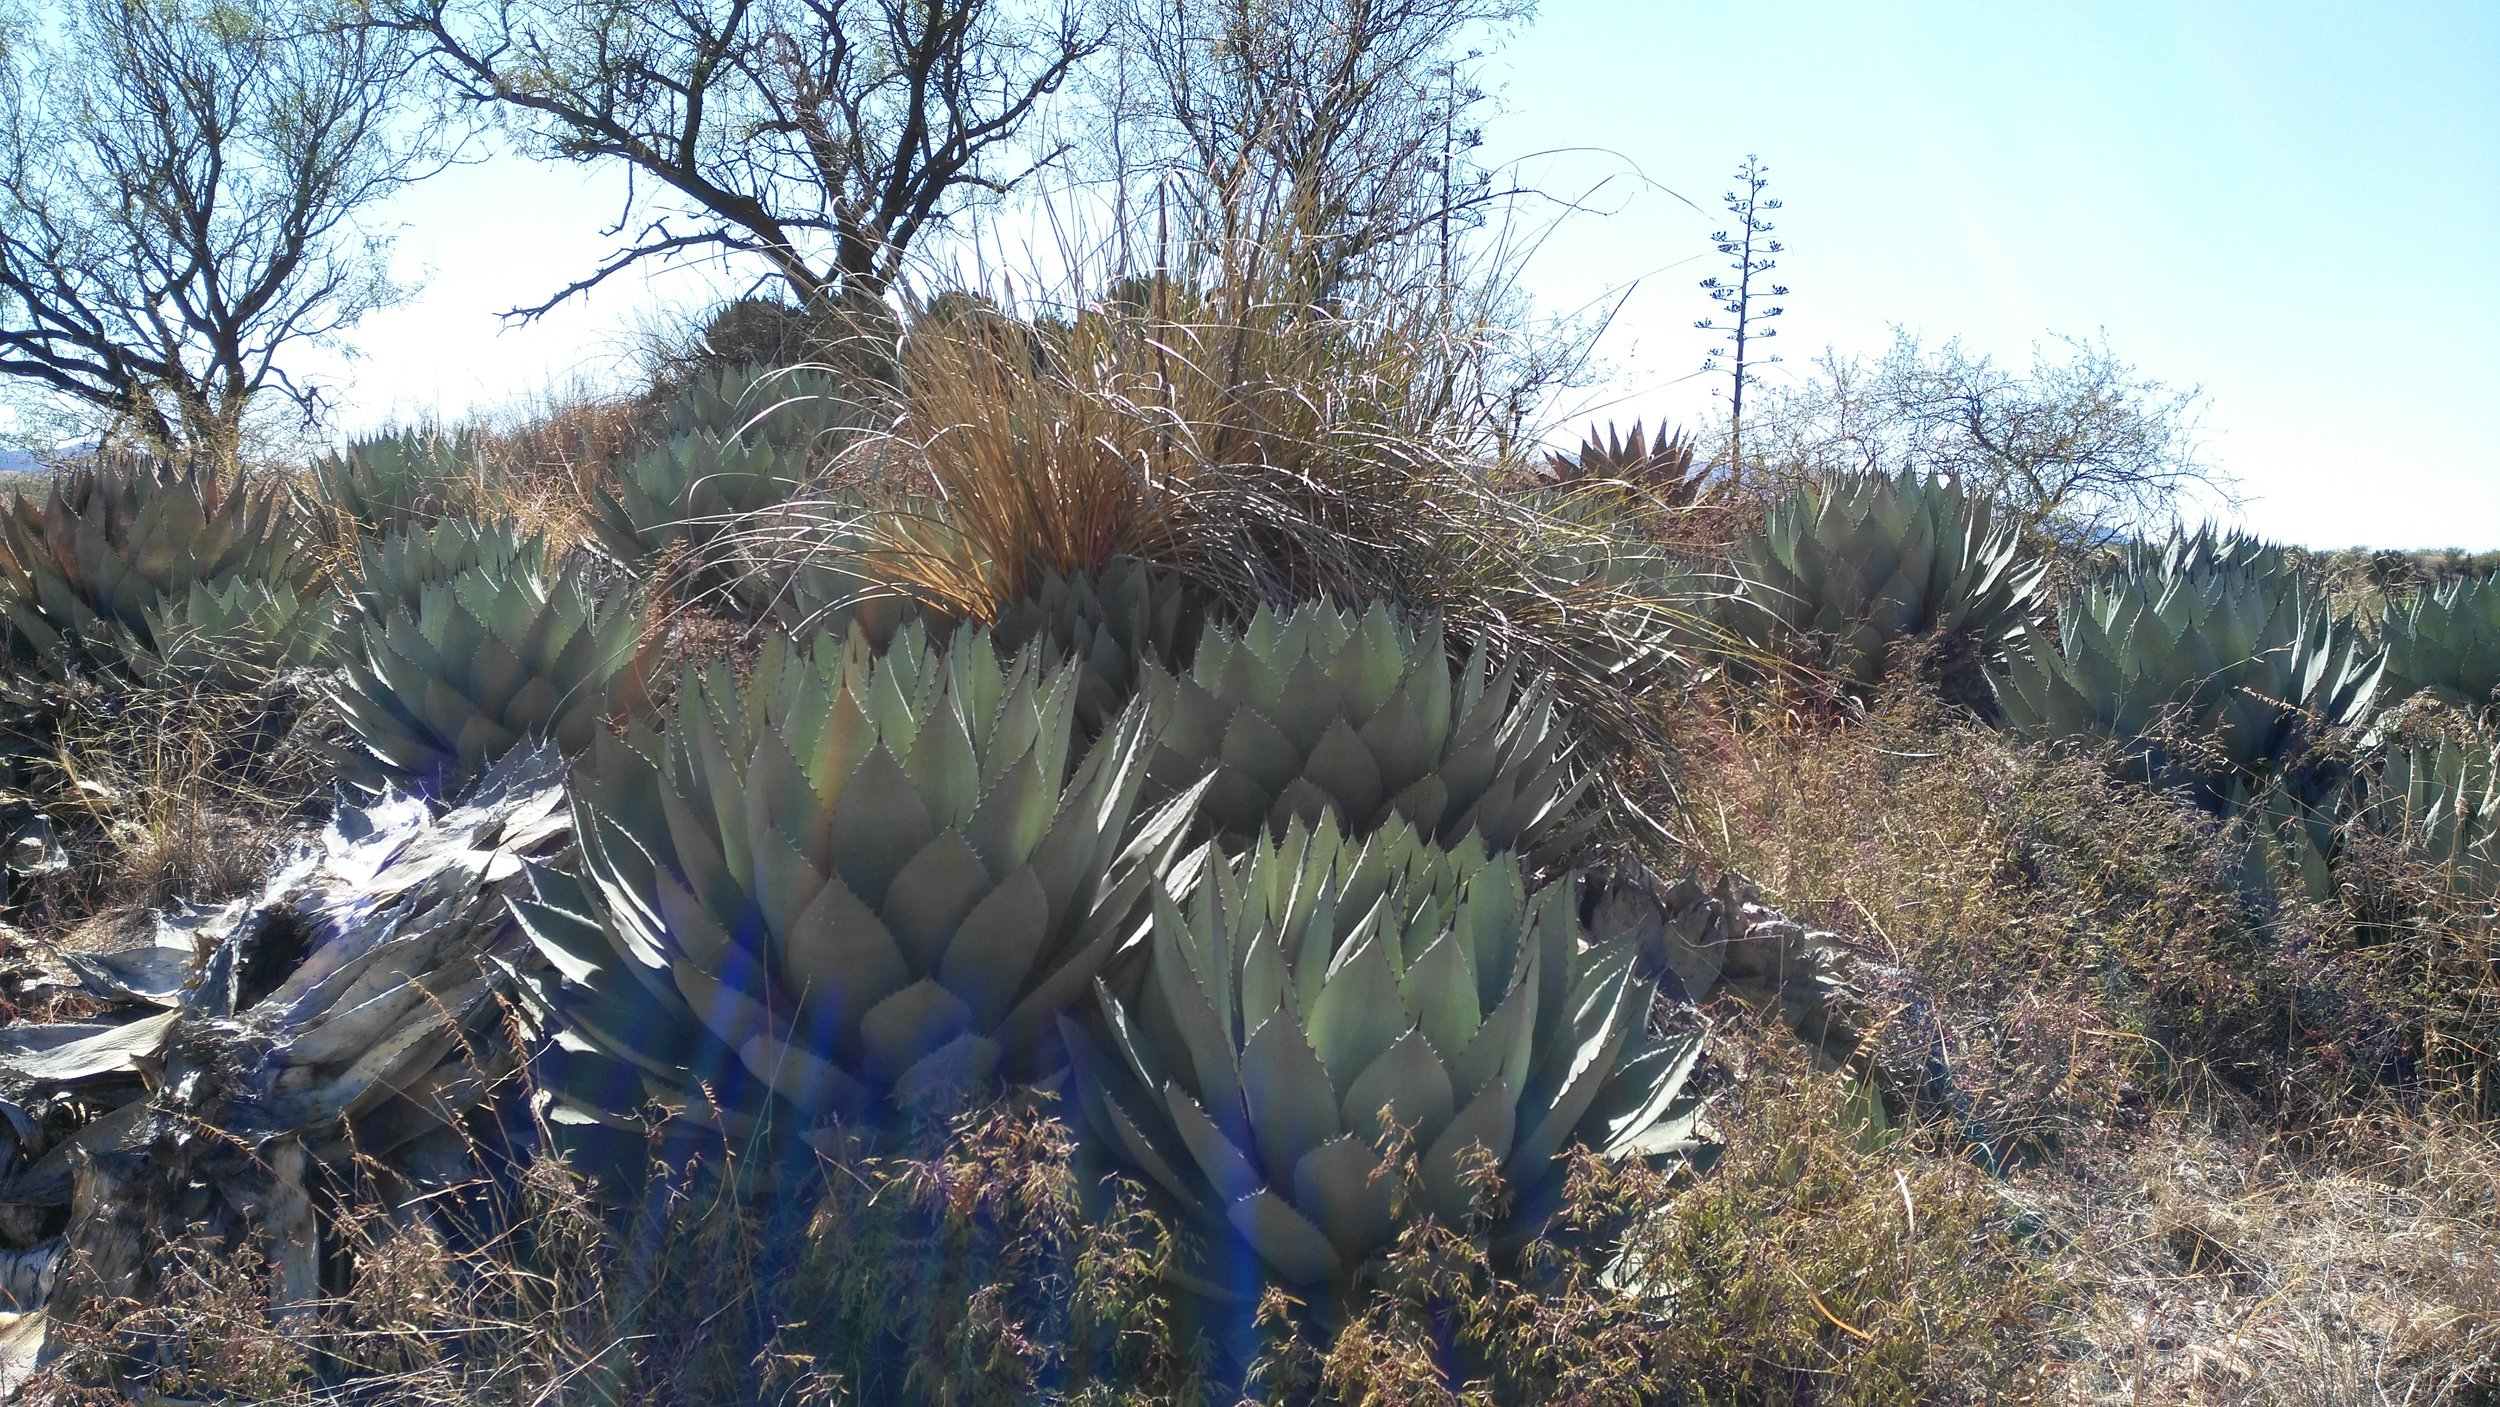 A patch of agave cultivated by someone who lived in the region several hundred years ago. Cultivation changes the plant and evolves the species.